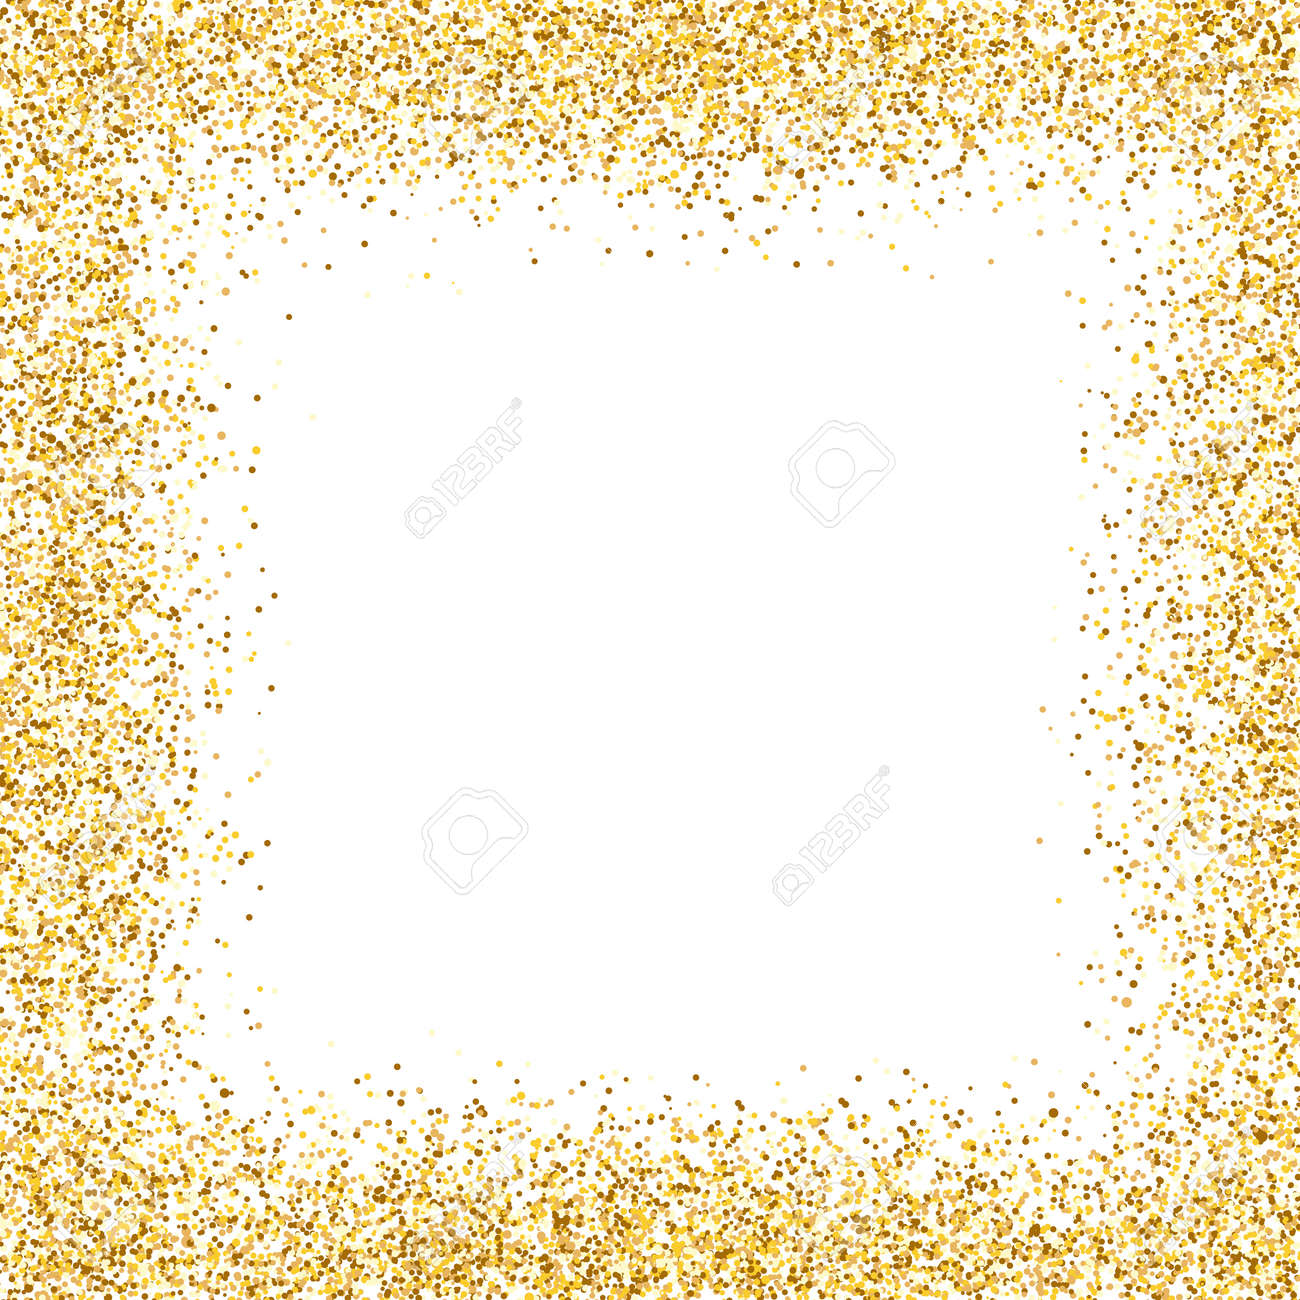 Glitter gold frame on white background. Golden border design. Luxury greeting card template. Shining confetti particles. Bright dust decoration. Vector illustration - 159855909